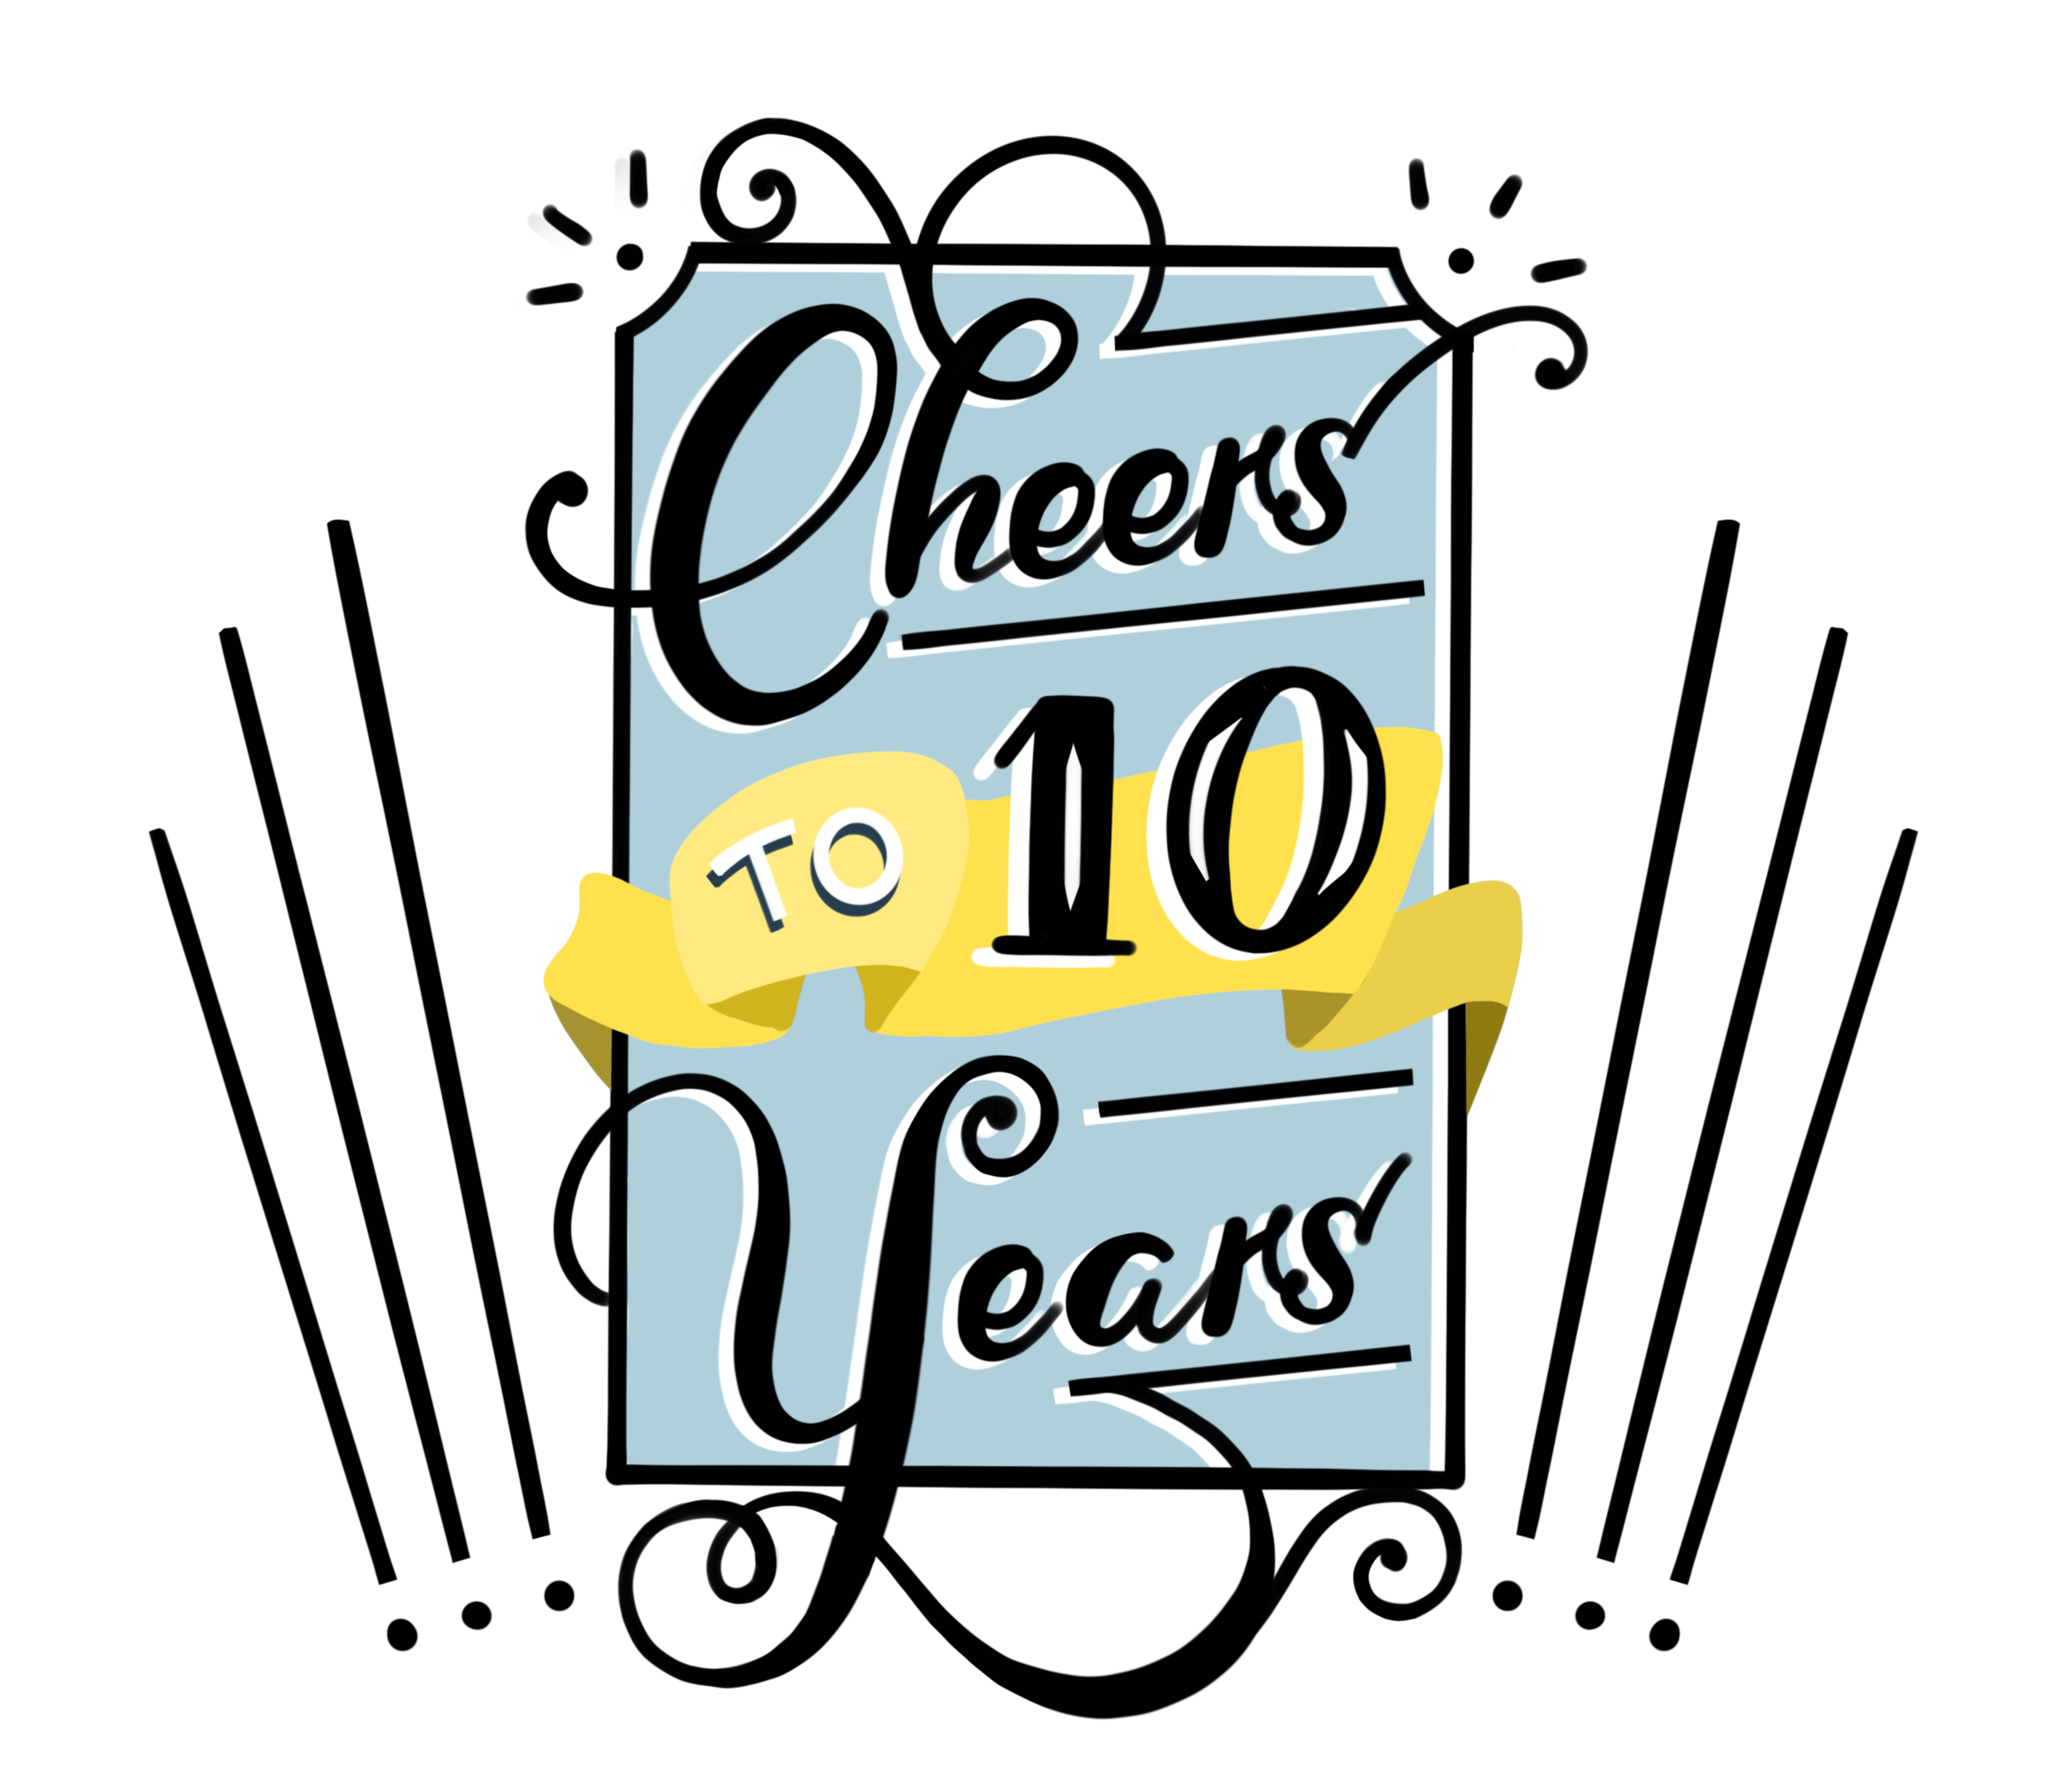 Raw-Cheersto10Years.png